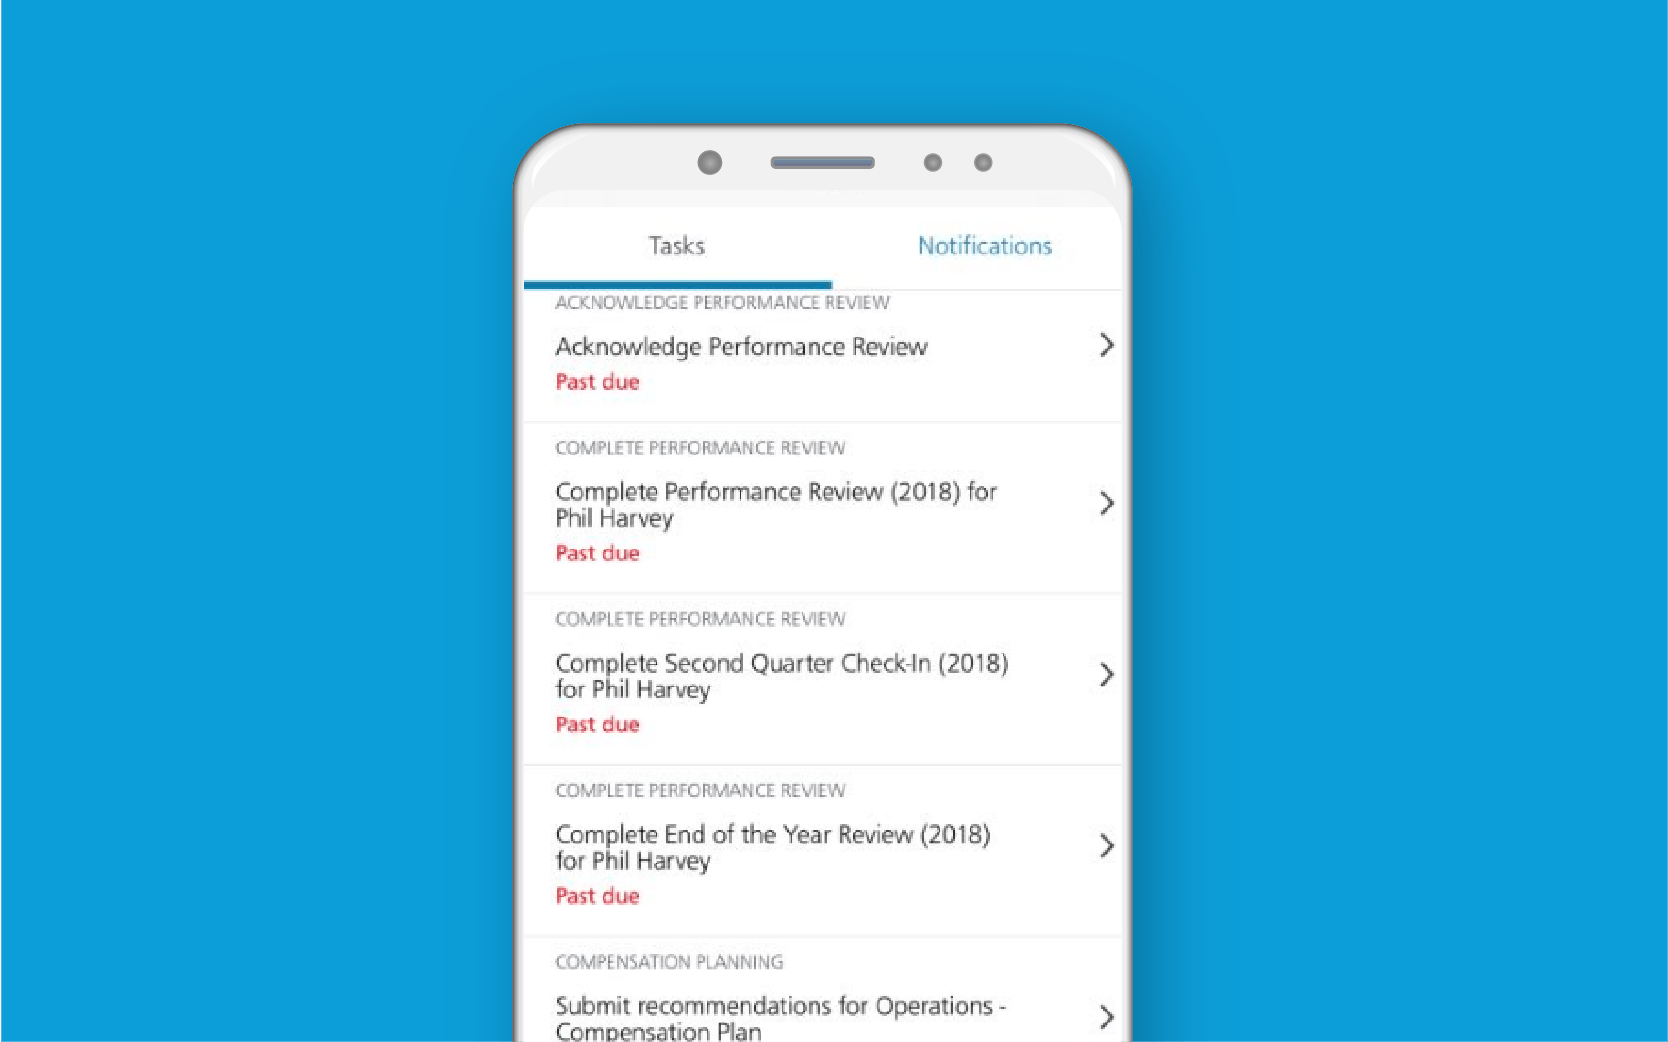 Mobile phone showing employee tasks against blue background